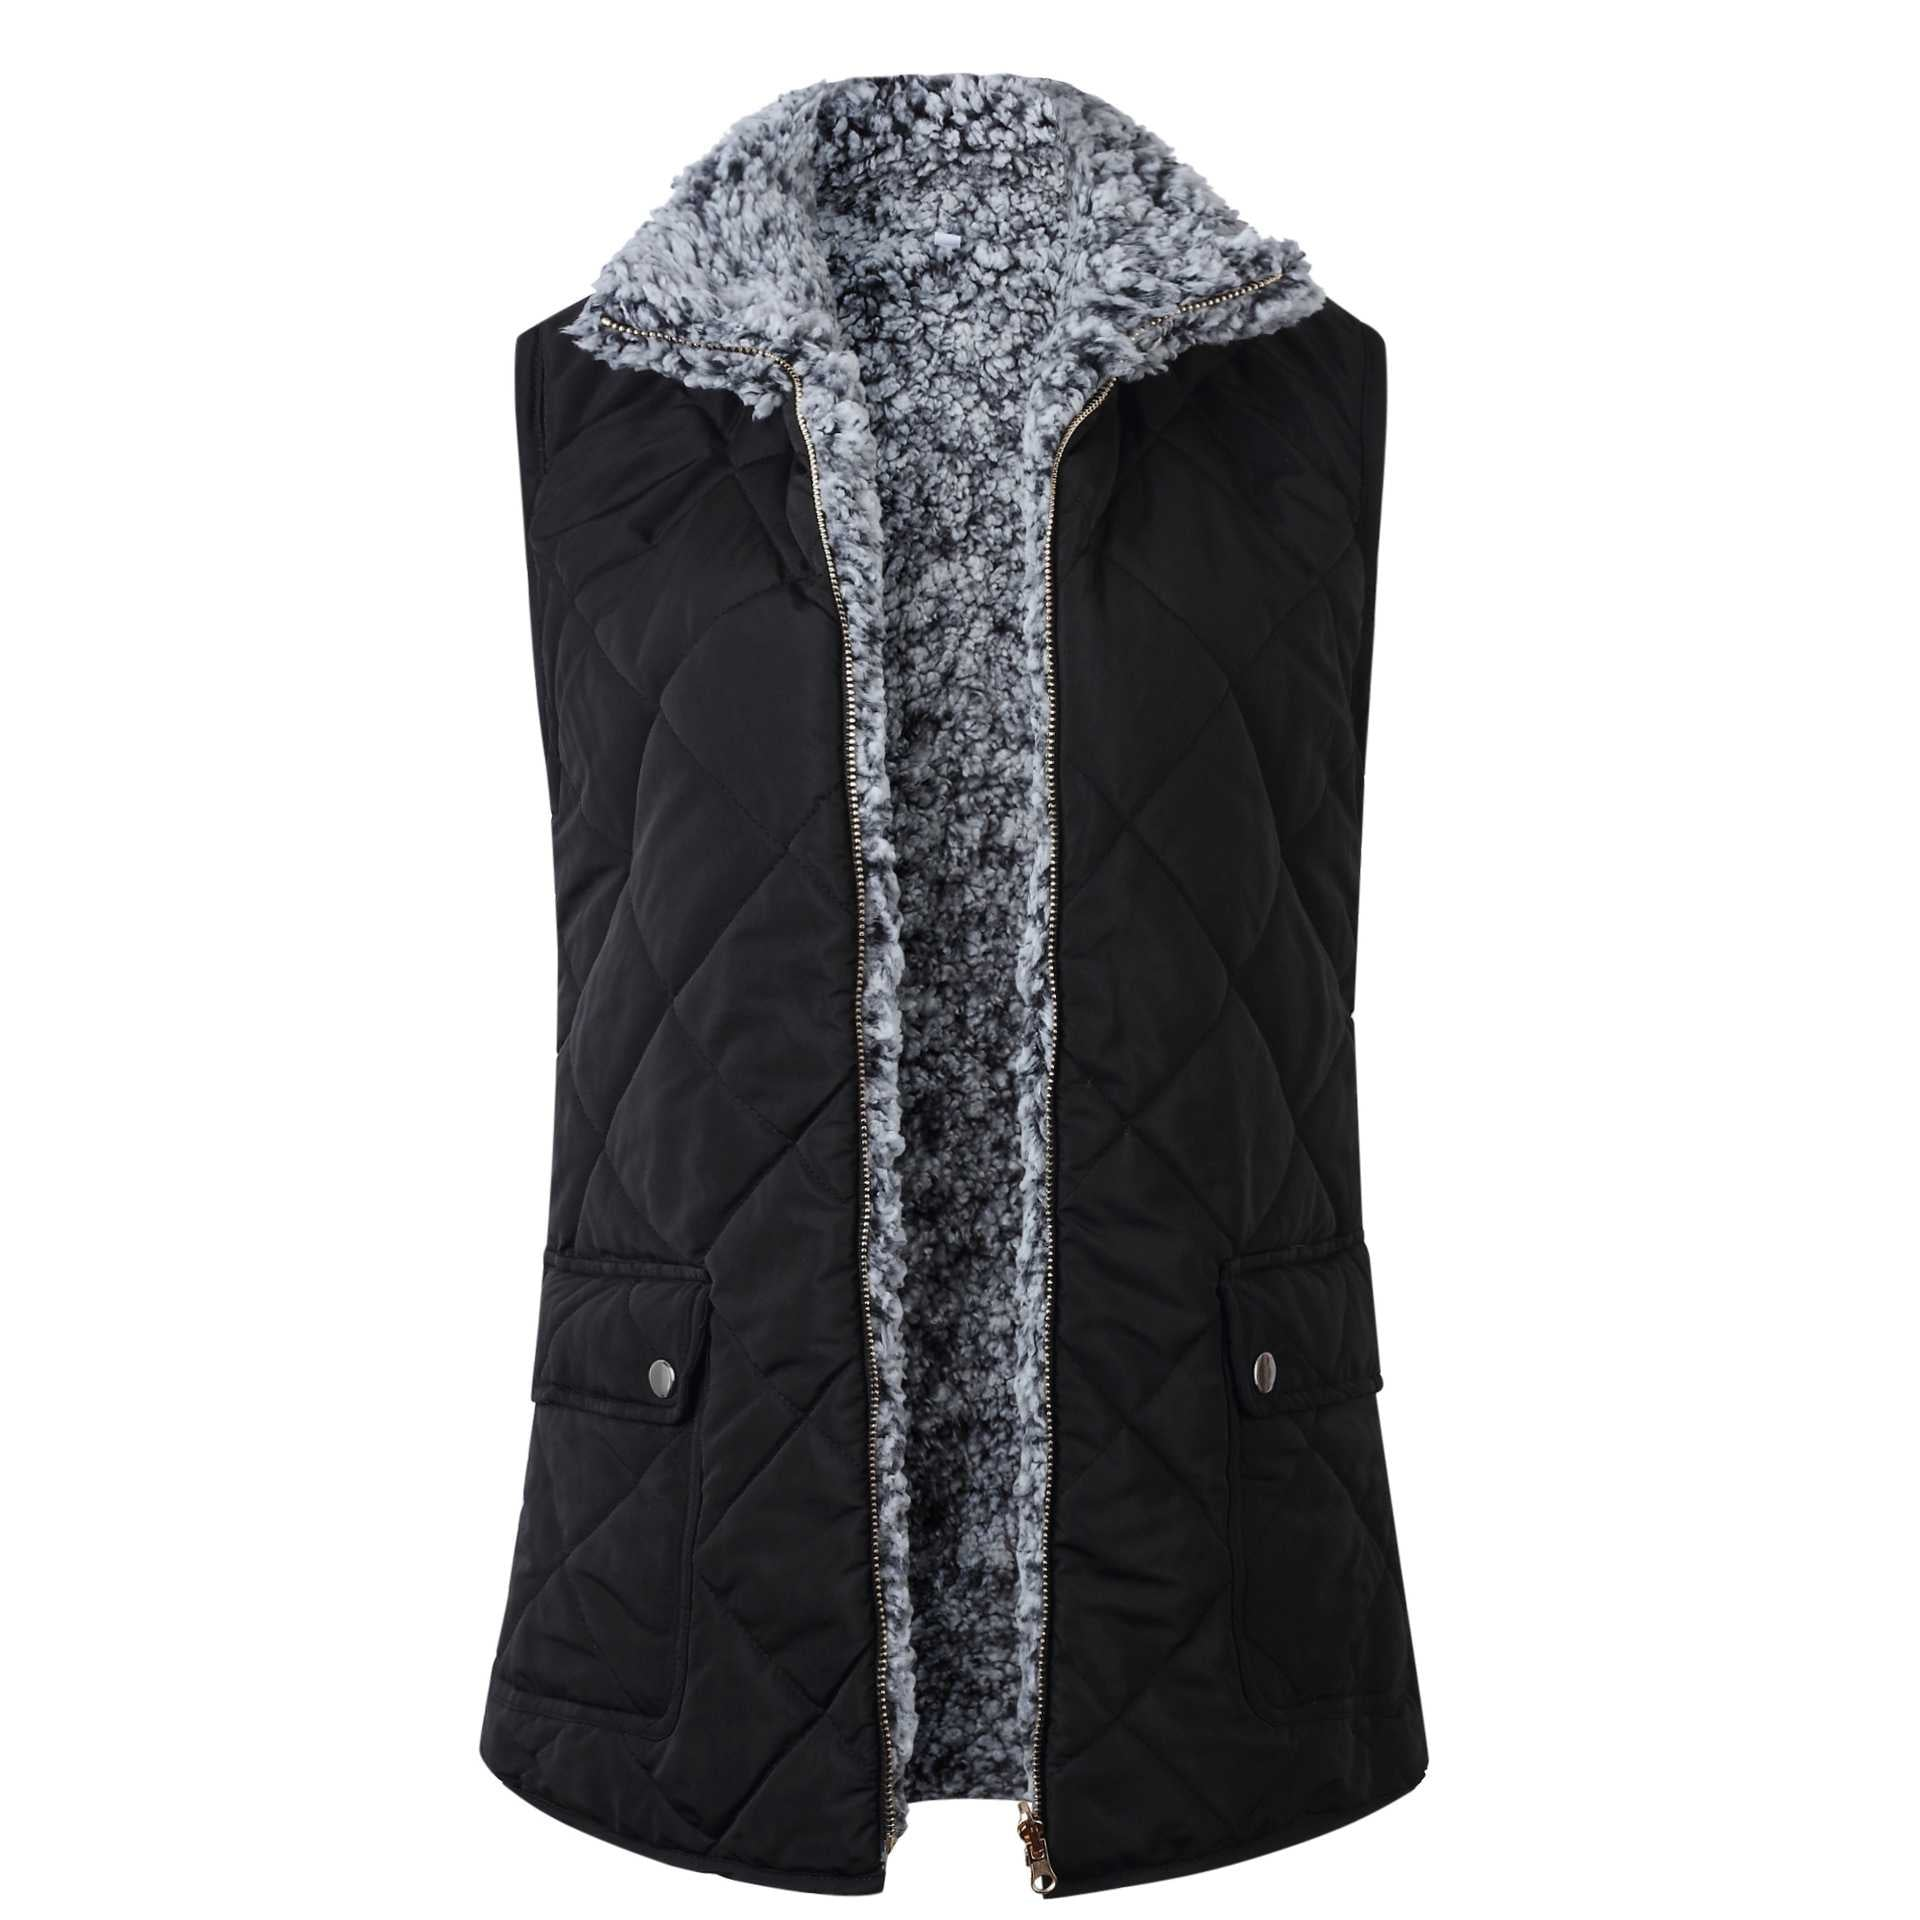 Reversible Cotton Faux Fur Lined Sherpa Shearling Vest With Pockets